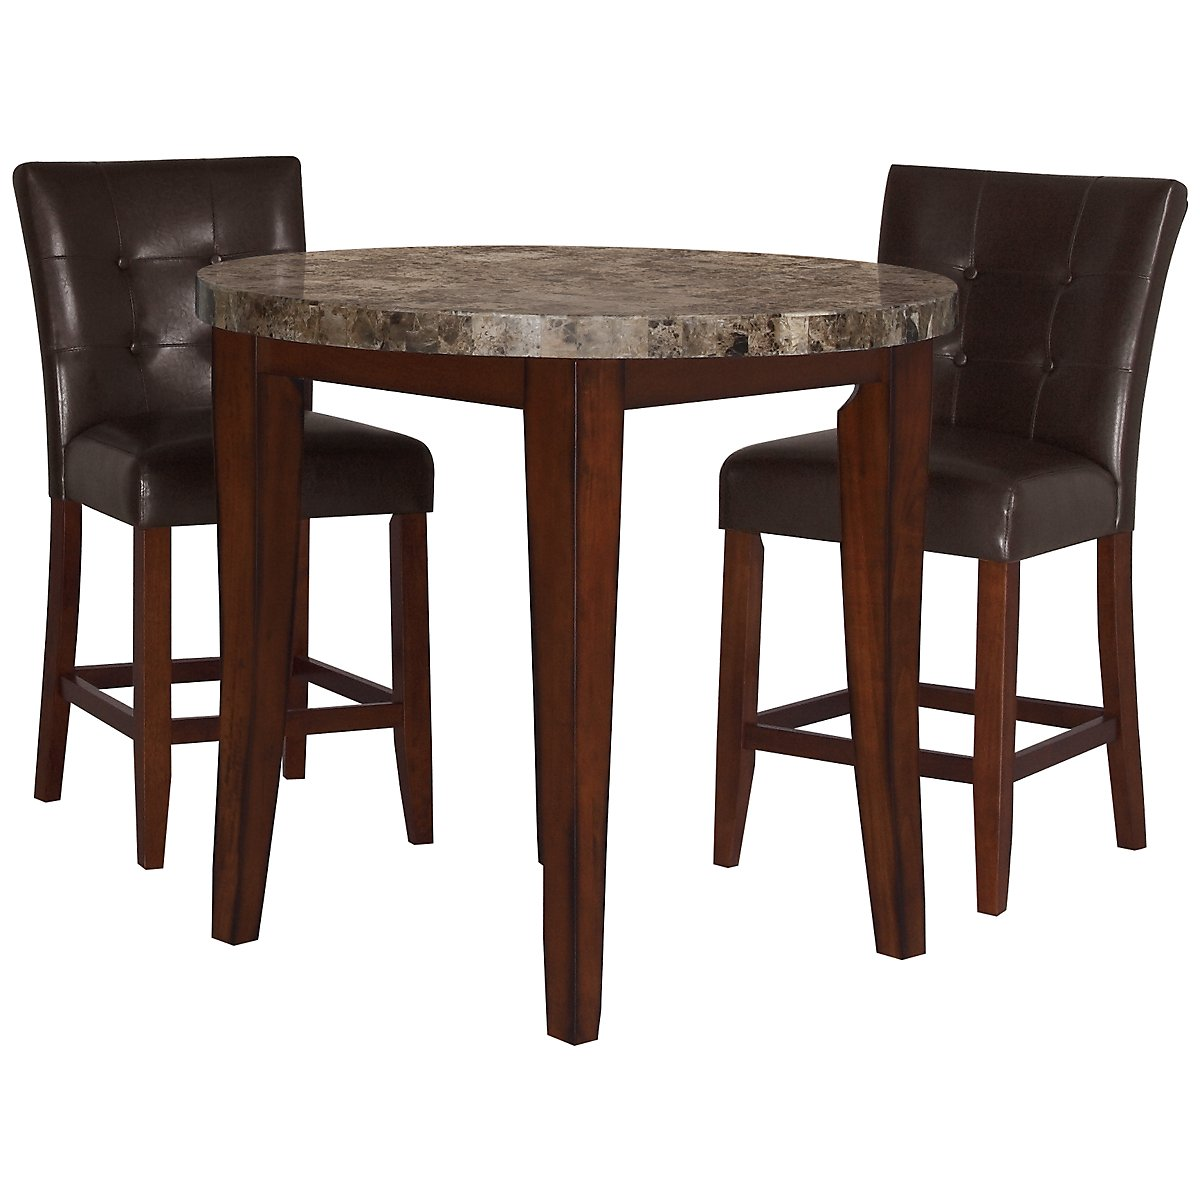 city lghts round marble high tbl/2 barstools